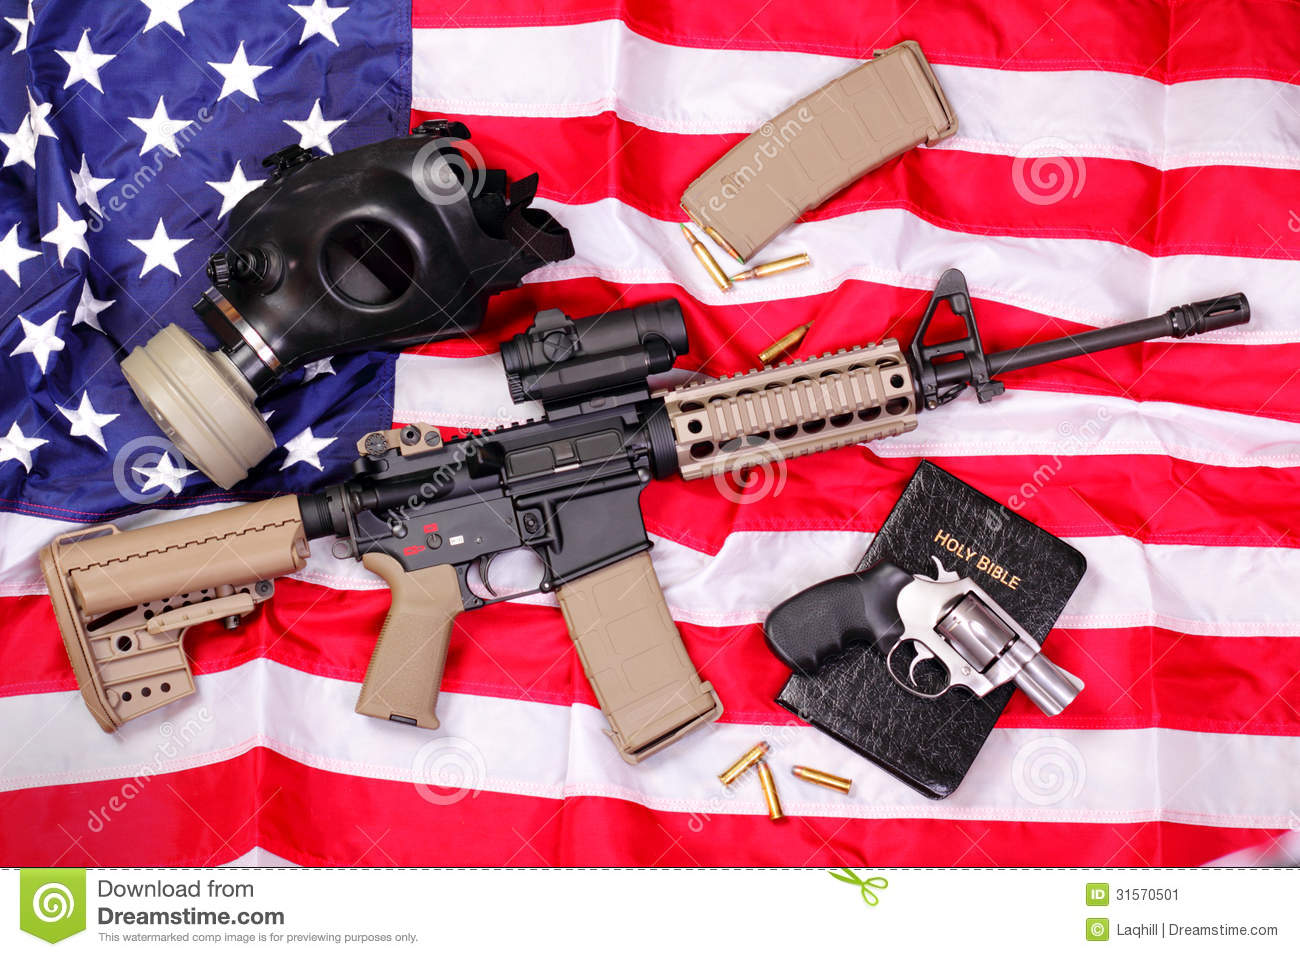 AR Rifle, a Bible, a Gas Mask & a Pistol on Americ